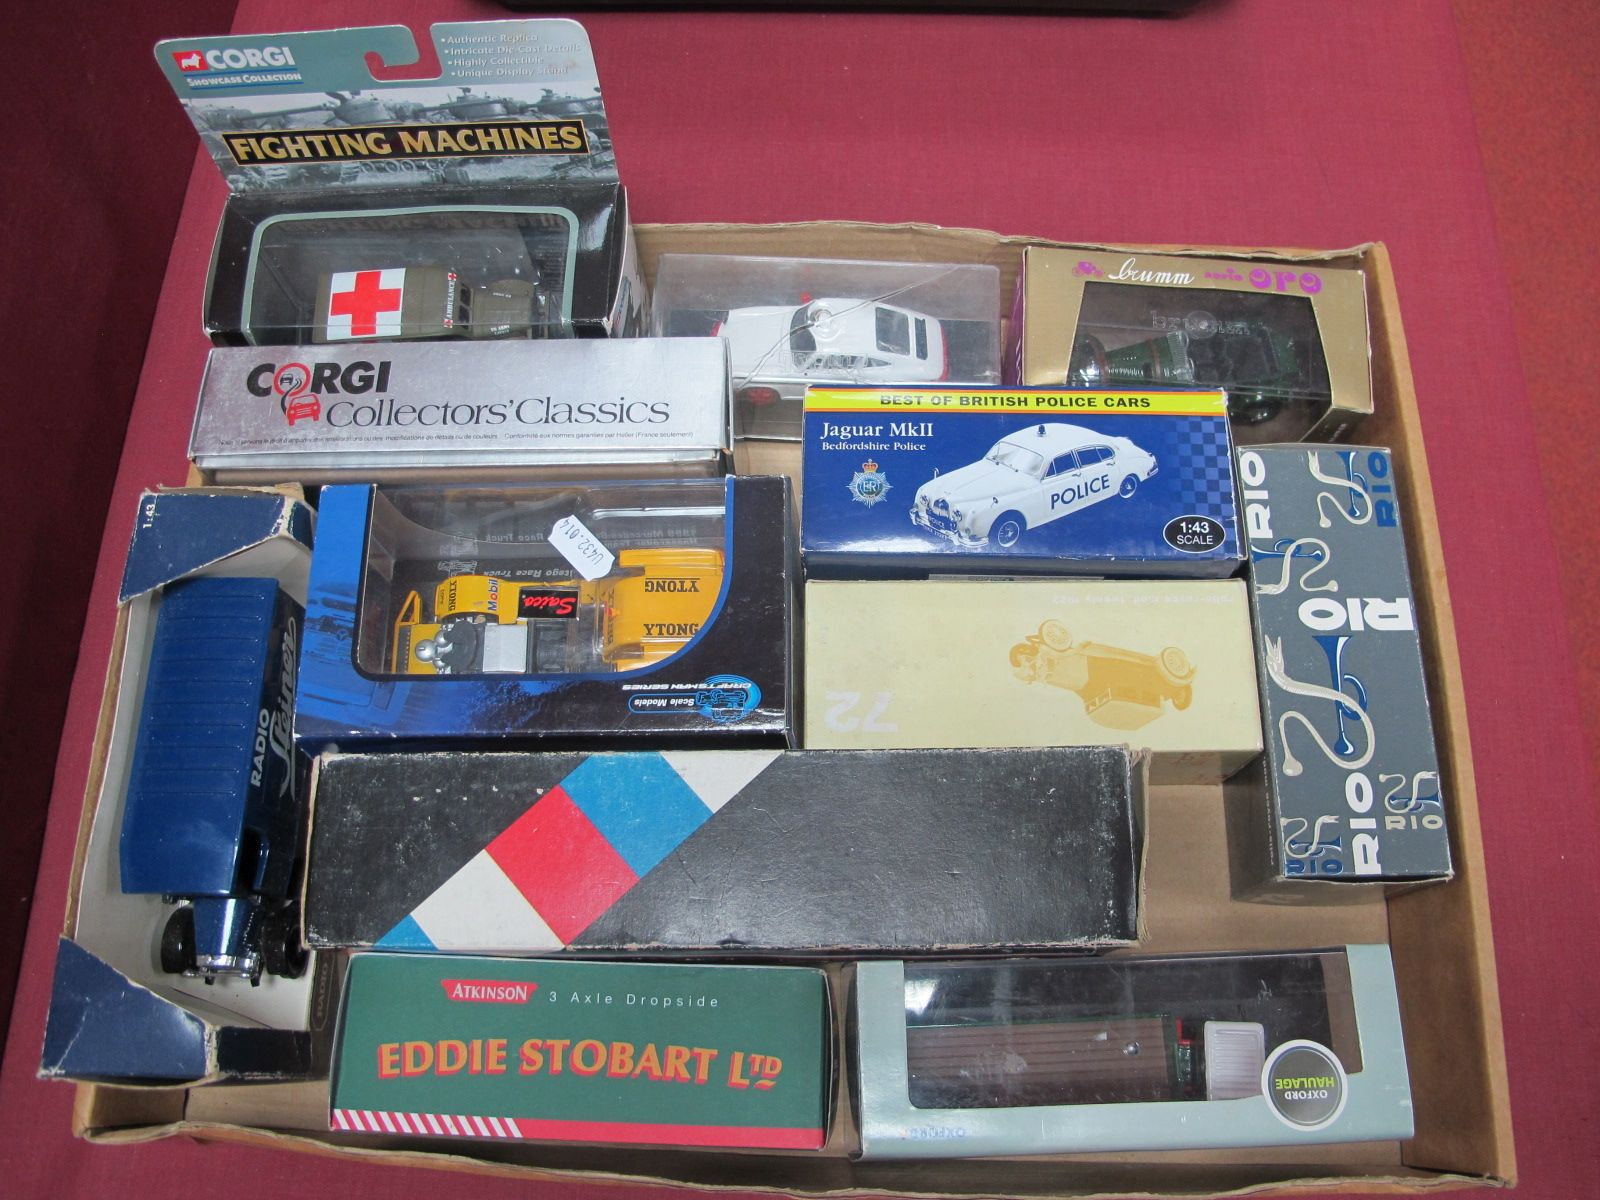 A Quantity of Boxed Limited Edition and Promotional Diecast, to include Corgi fighting machines, 4 x